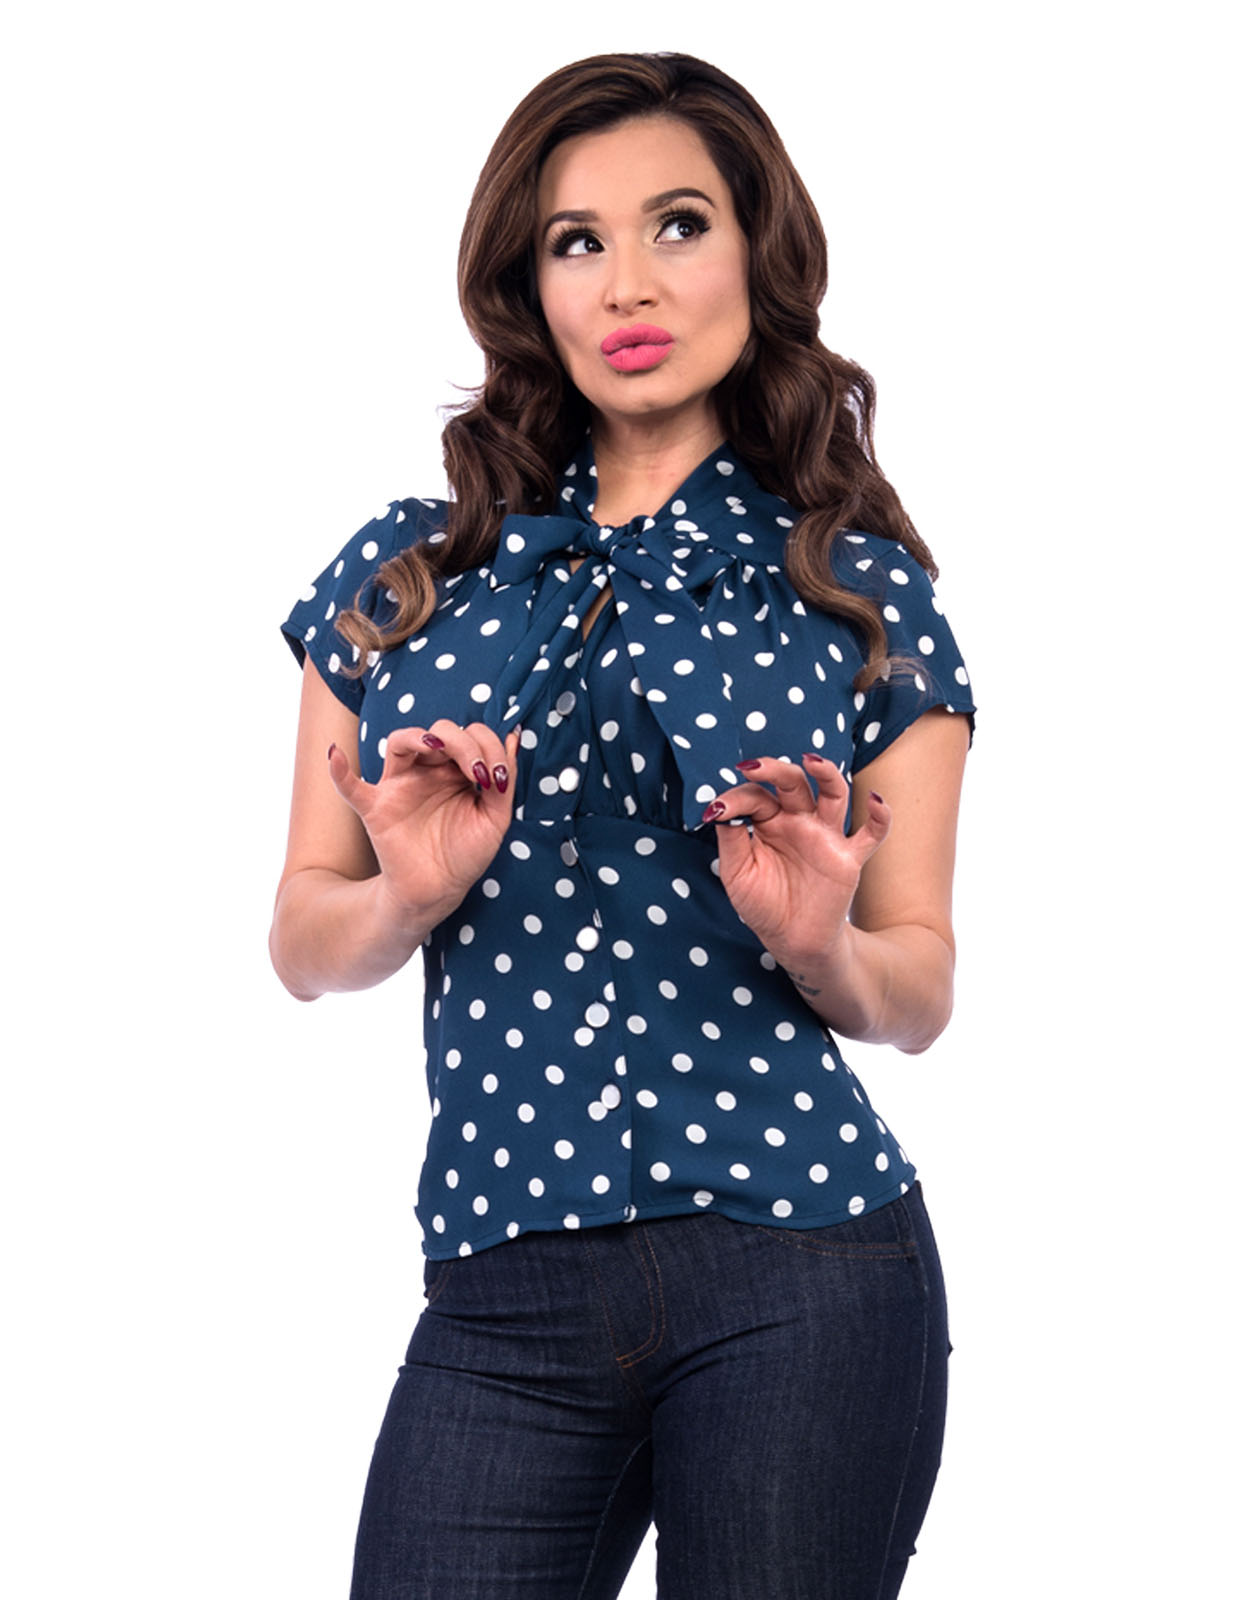 Harlow Chiffon Top in Navy & White Polka Dot by Steady- SALE - 4X only